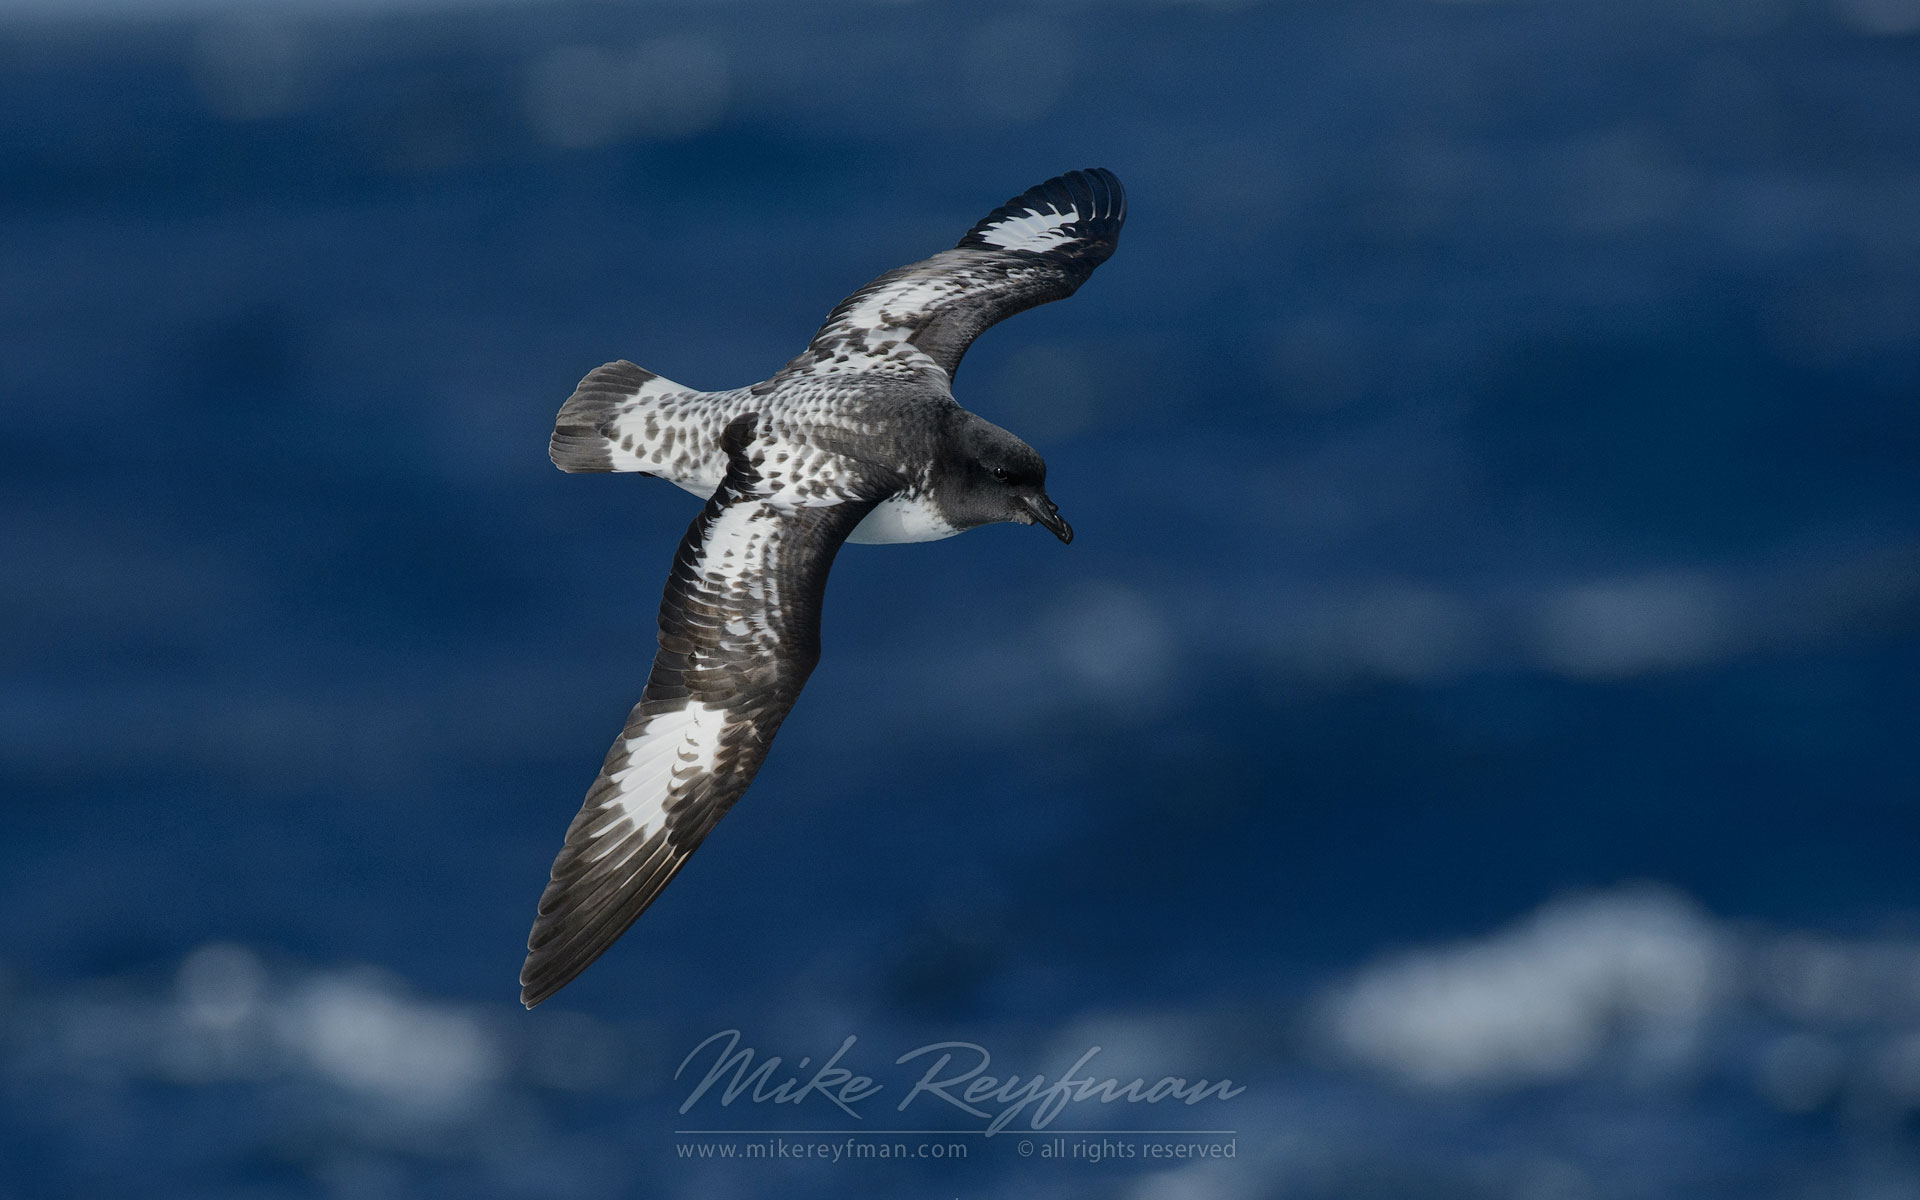 Cape Petrel (Daption capense) in flight. South Georgia, Sub Antarctic. - Albatrosses-Petrels-Landscapes-South-Georgia-Sub-Antarctic - Mike Reyfman Photography